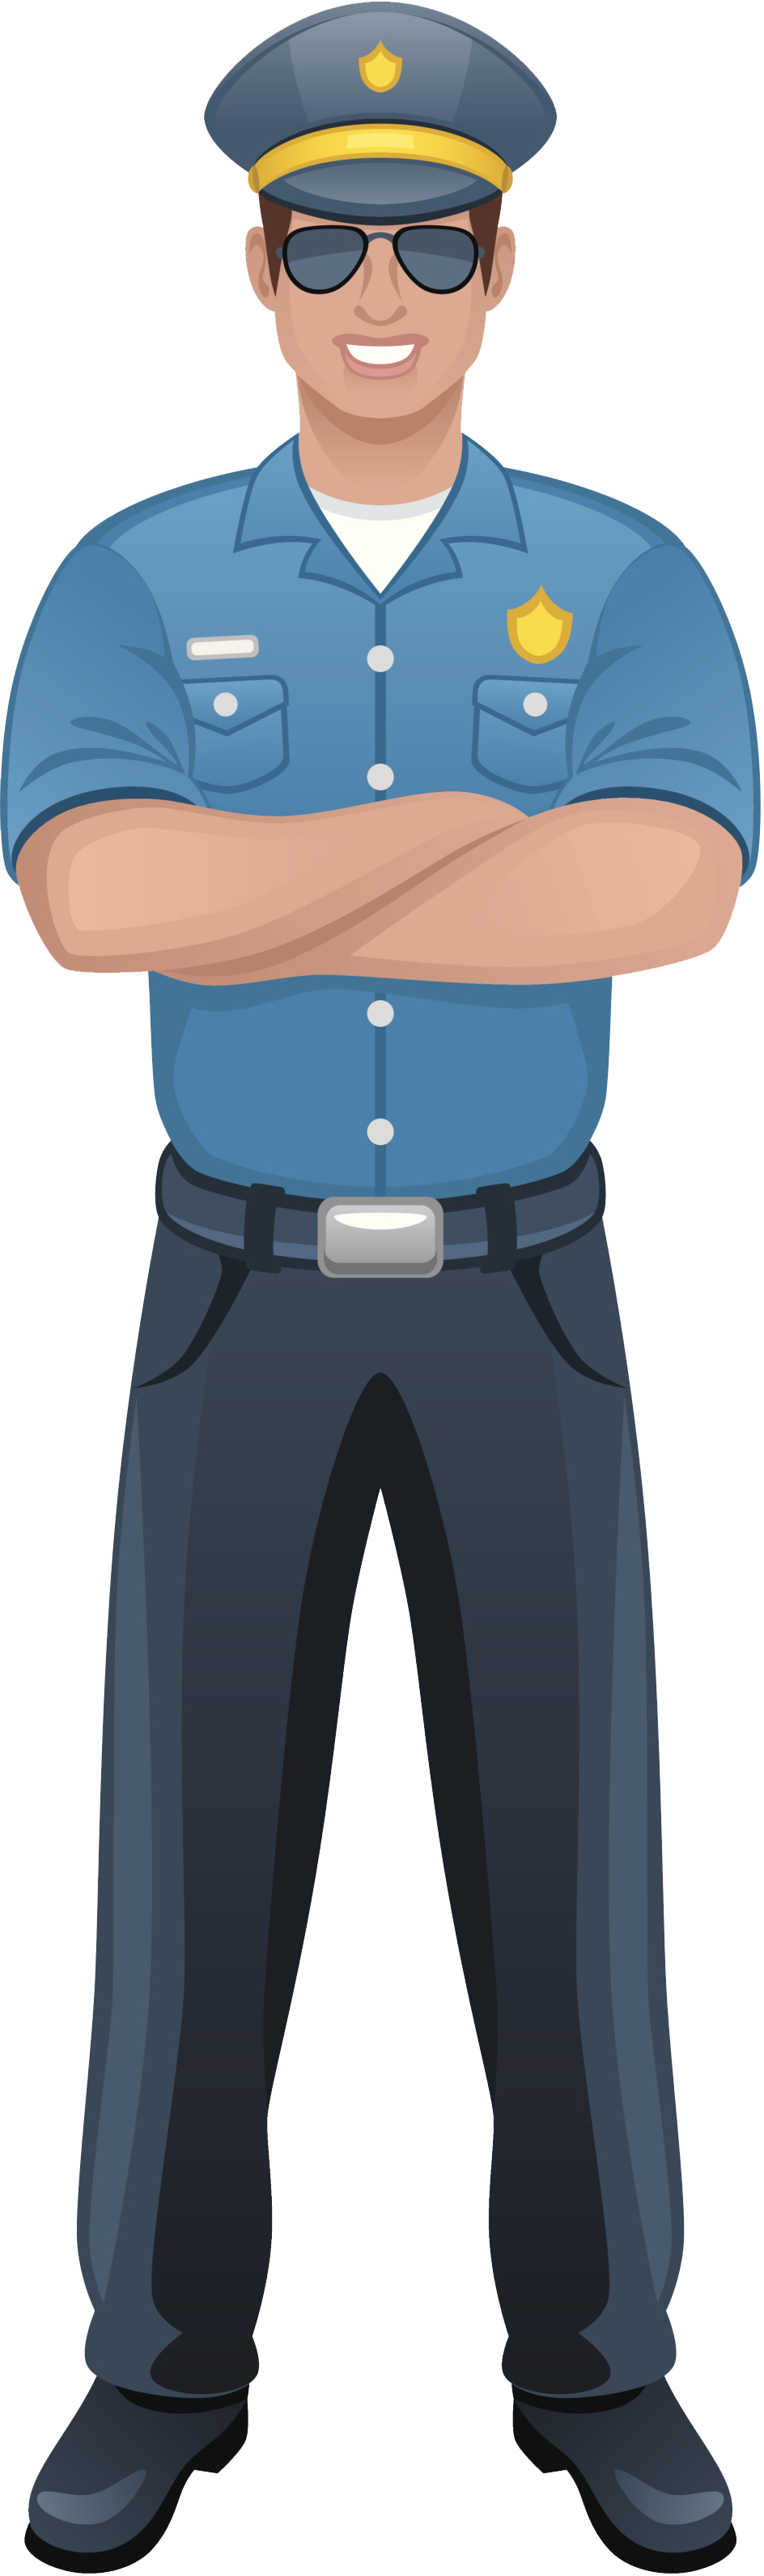 Police clipart. Free officer cliparts download